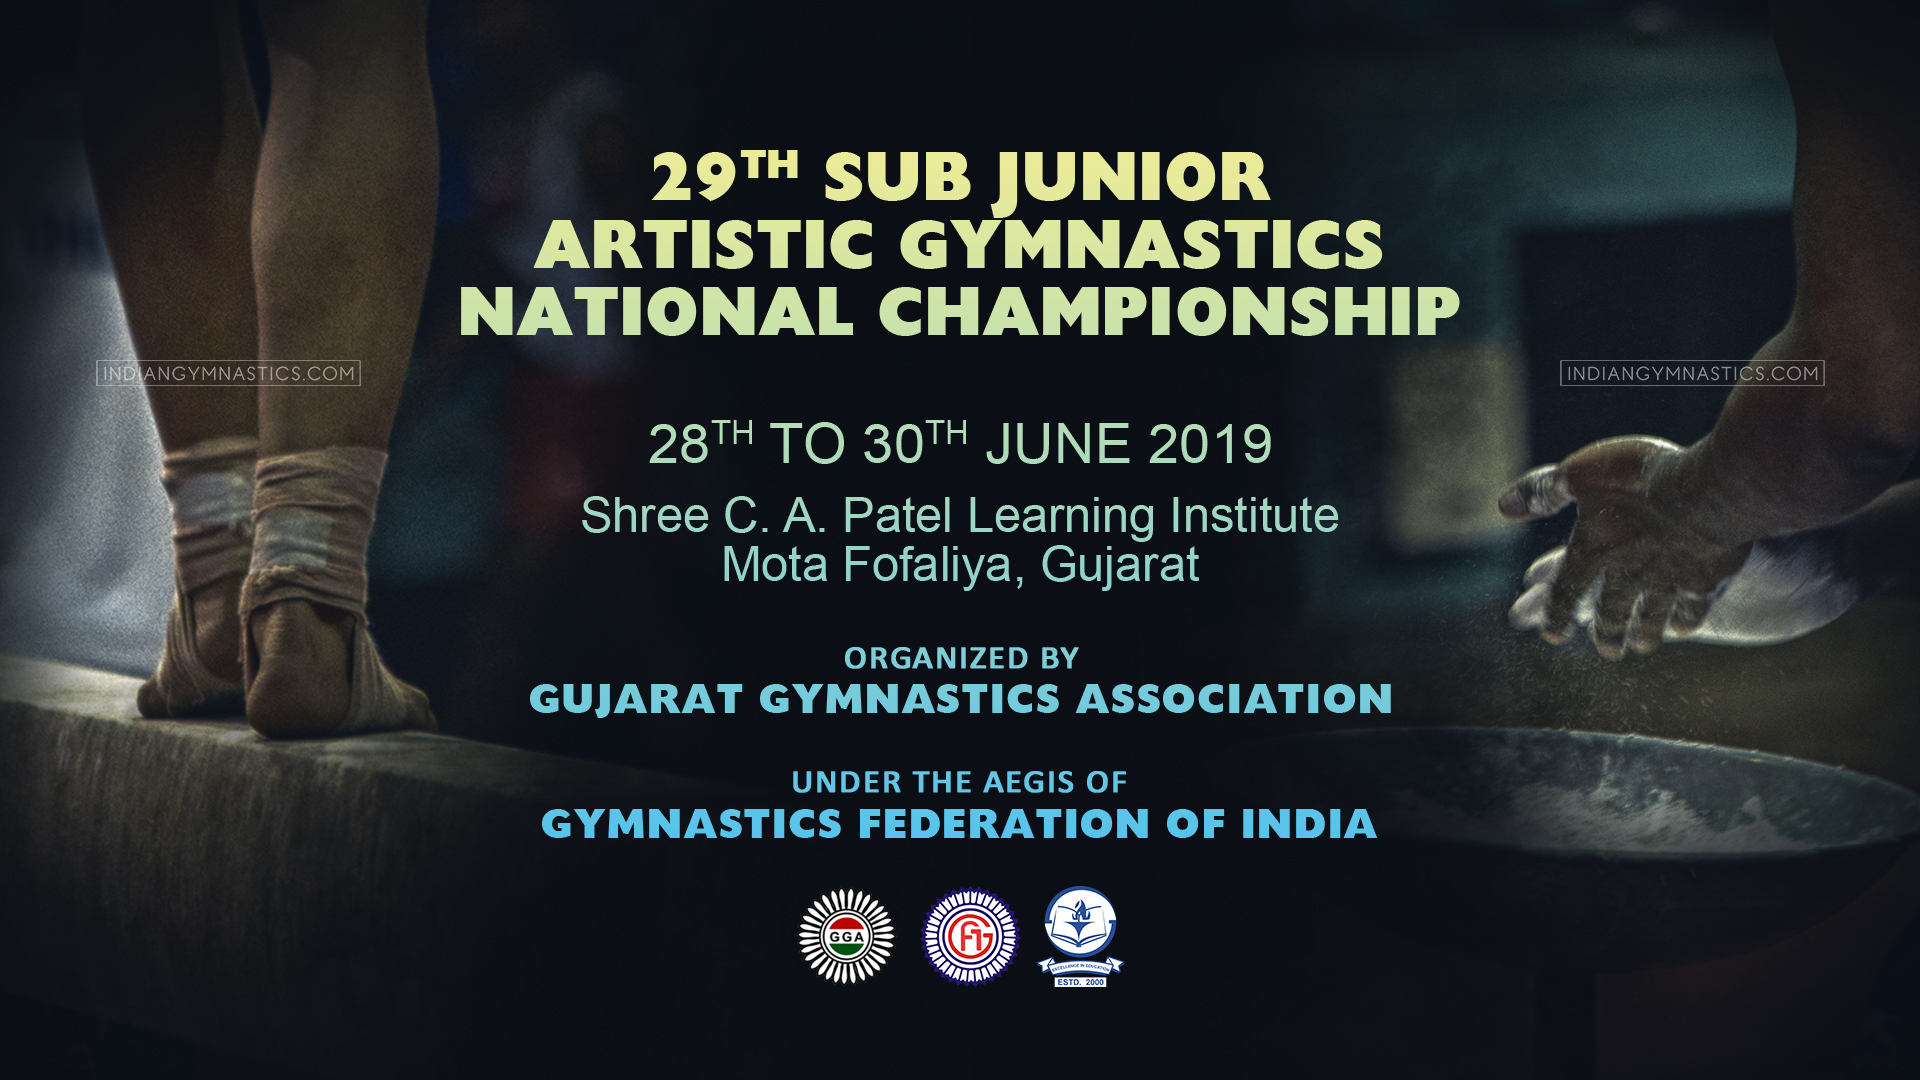 29th Sub Junior Artistic Gymnastics National Championship